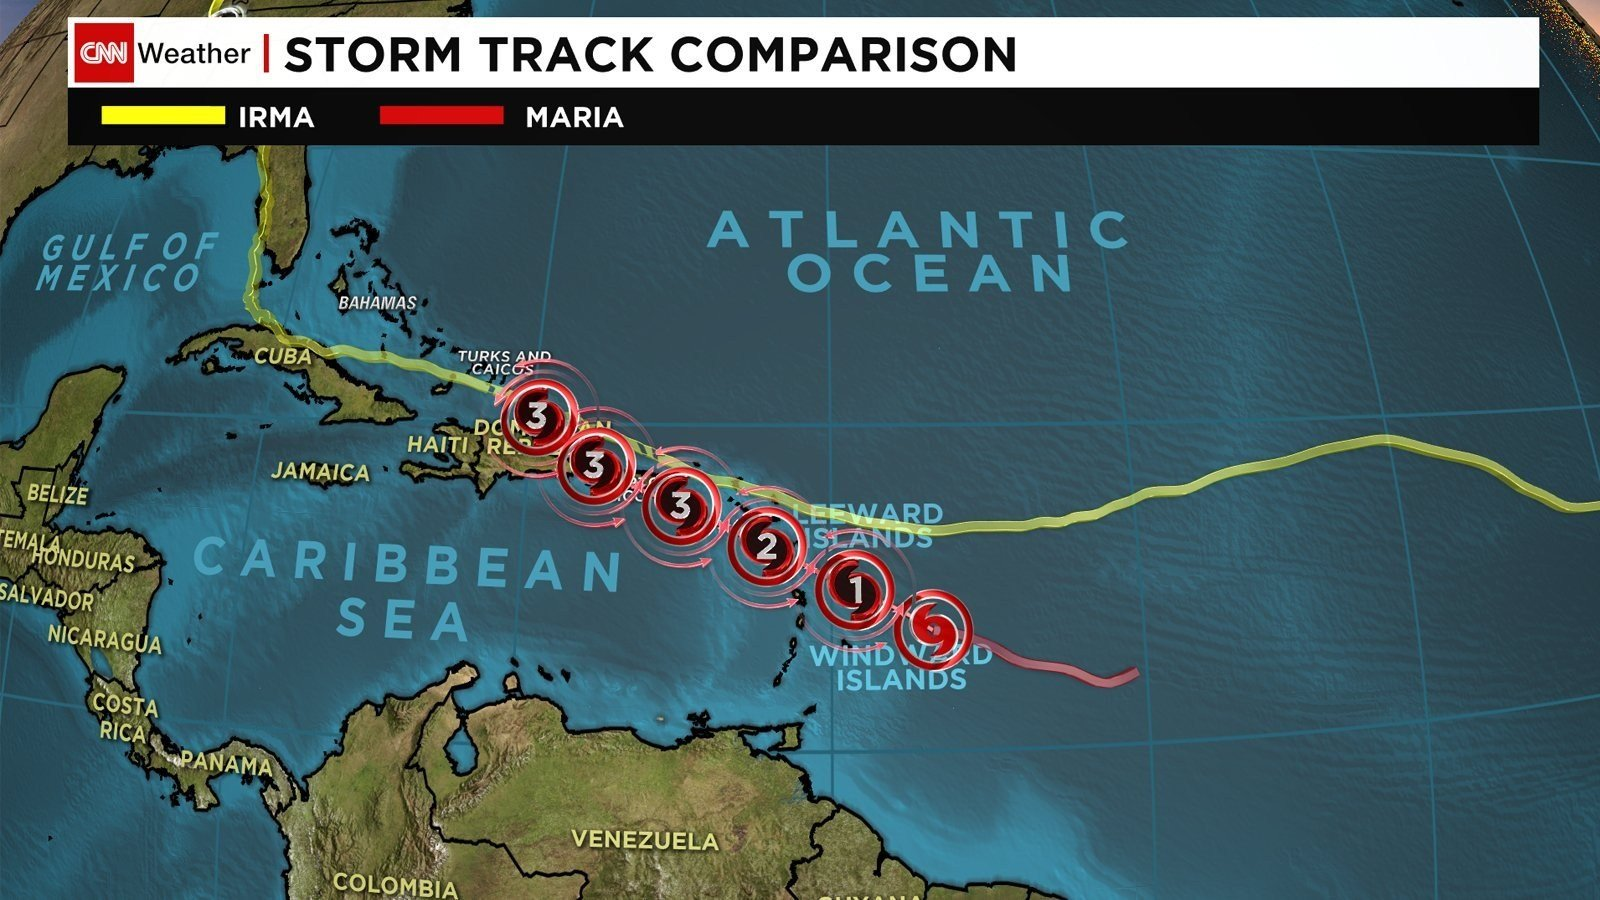 Hurricane Maria is forecast to rapidly strengthen over the next two days as it takes aim at Caribbean islands devastated by Hurricane Irma just days ago. (CNN image)